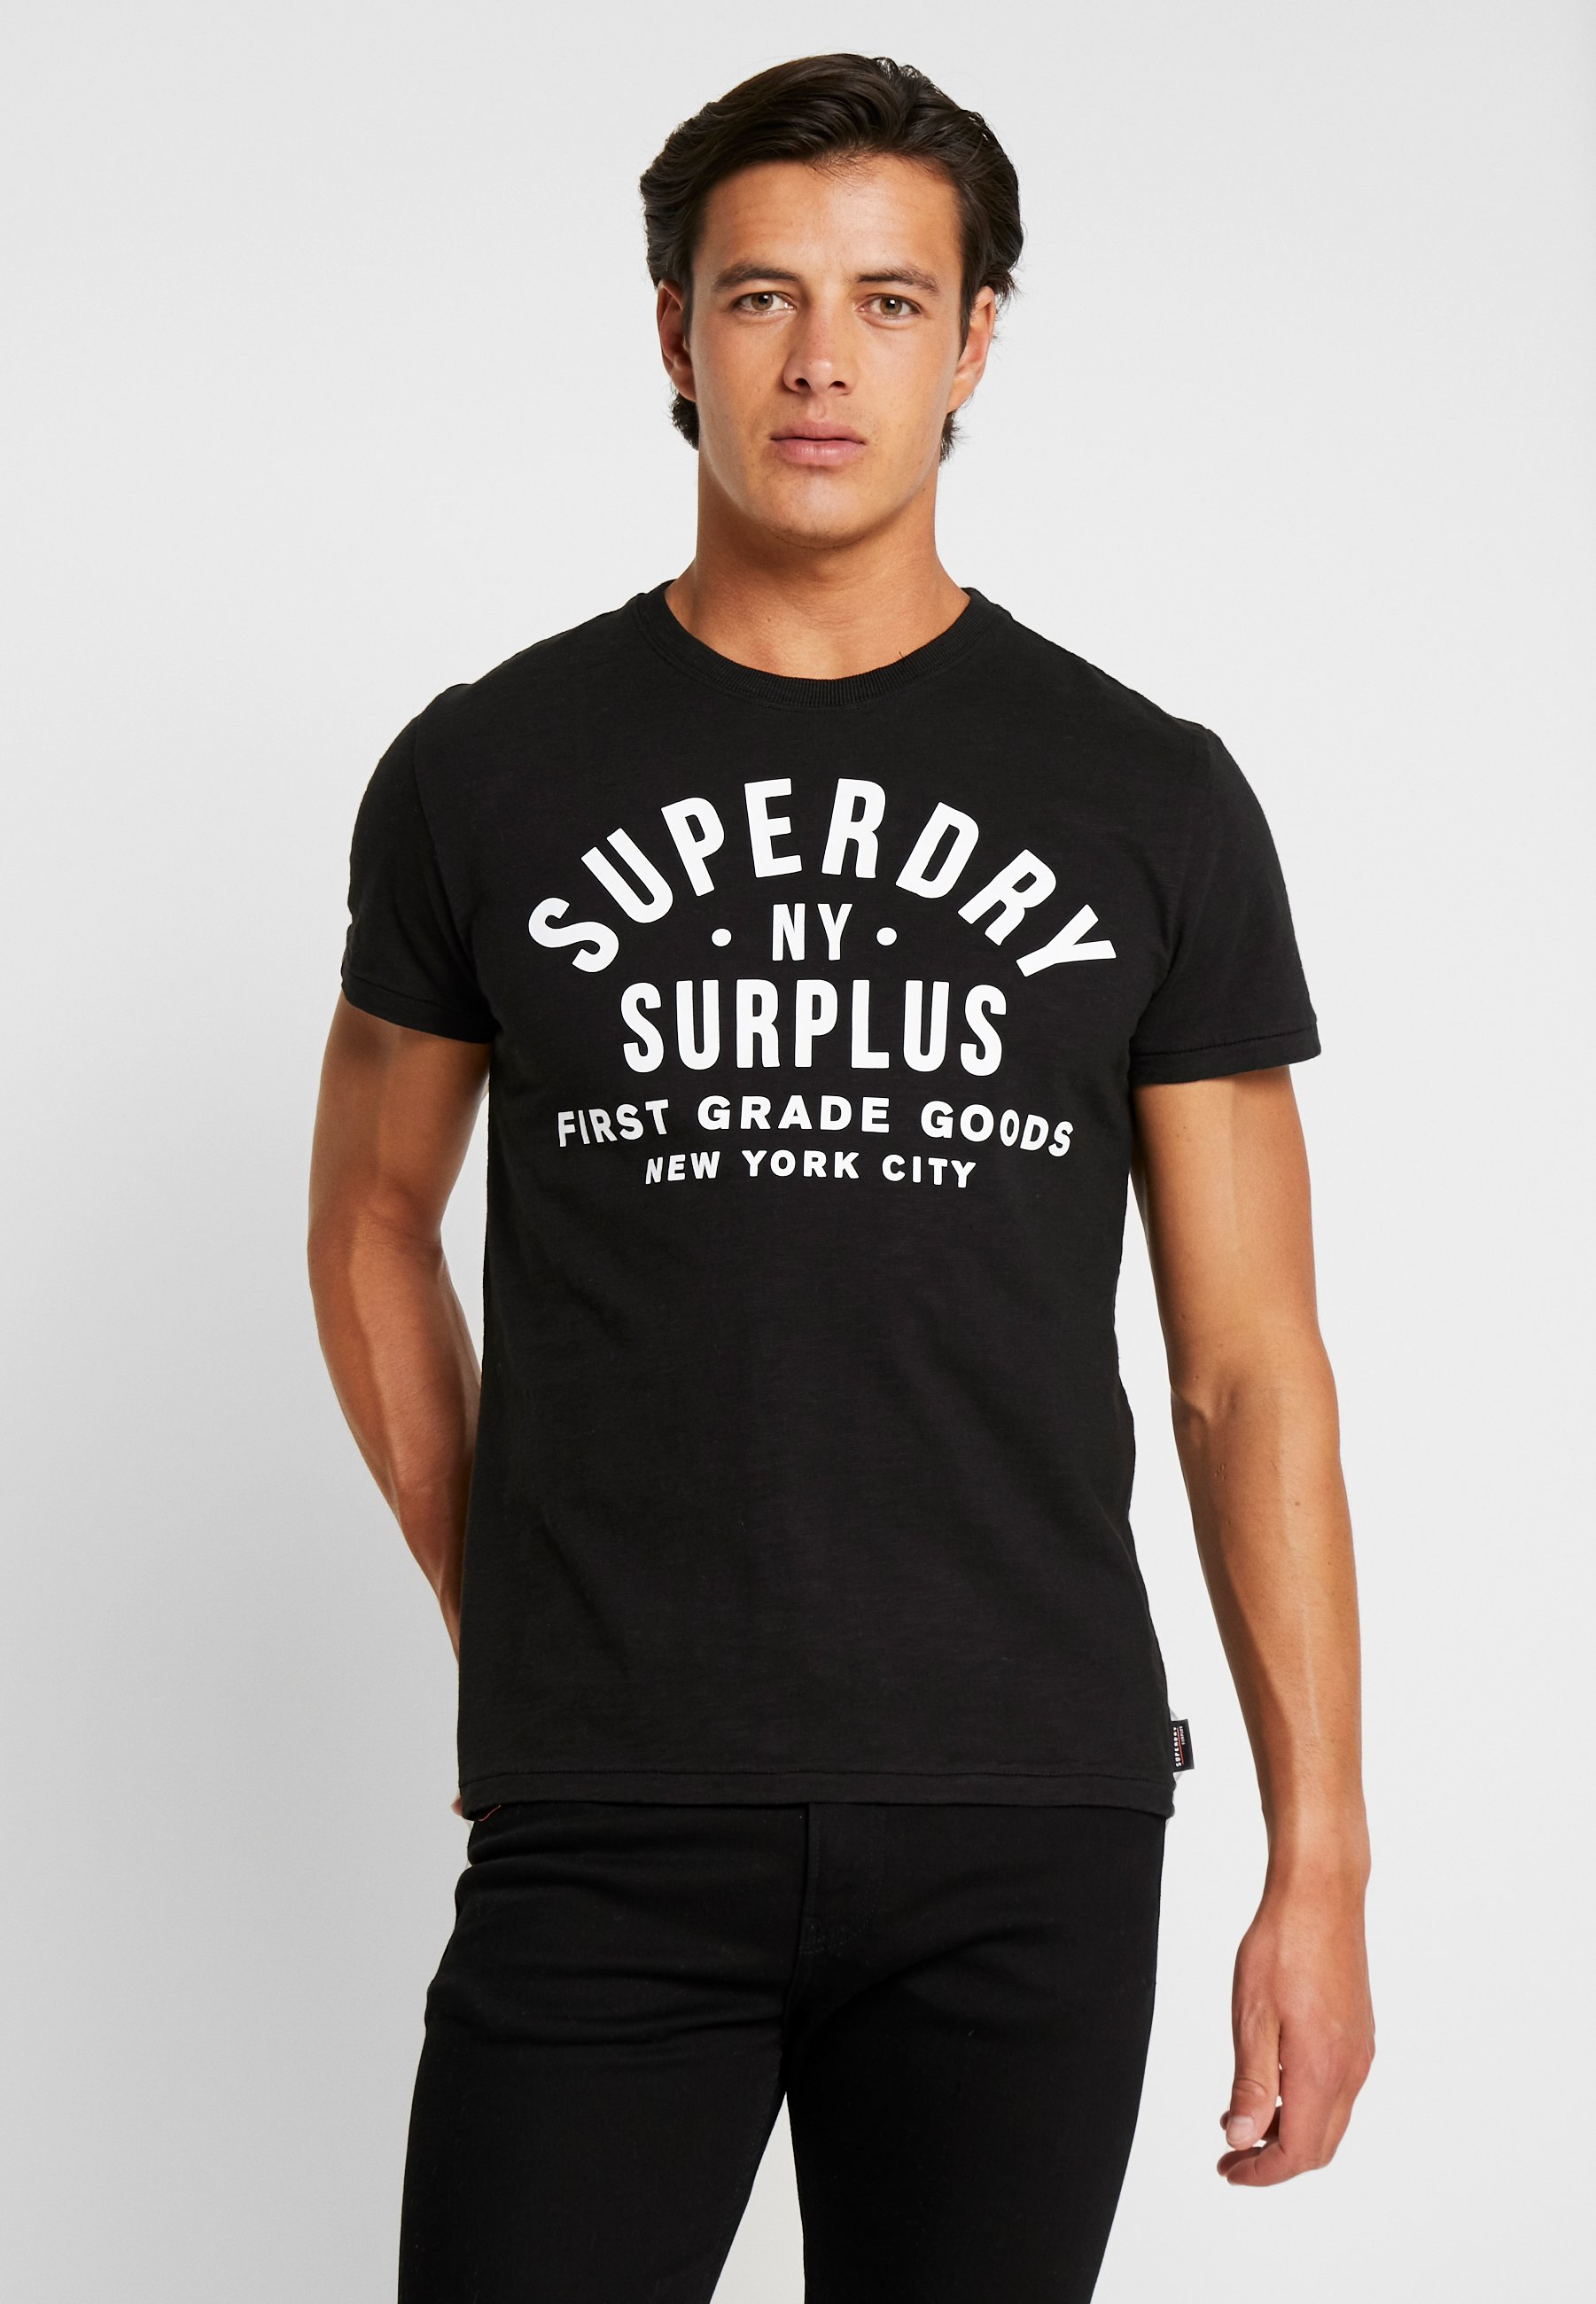 TeeT Jet shirt Imprimé Goods Superdry Surplus Black hsQtrd